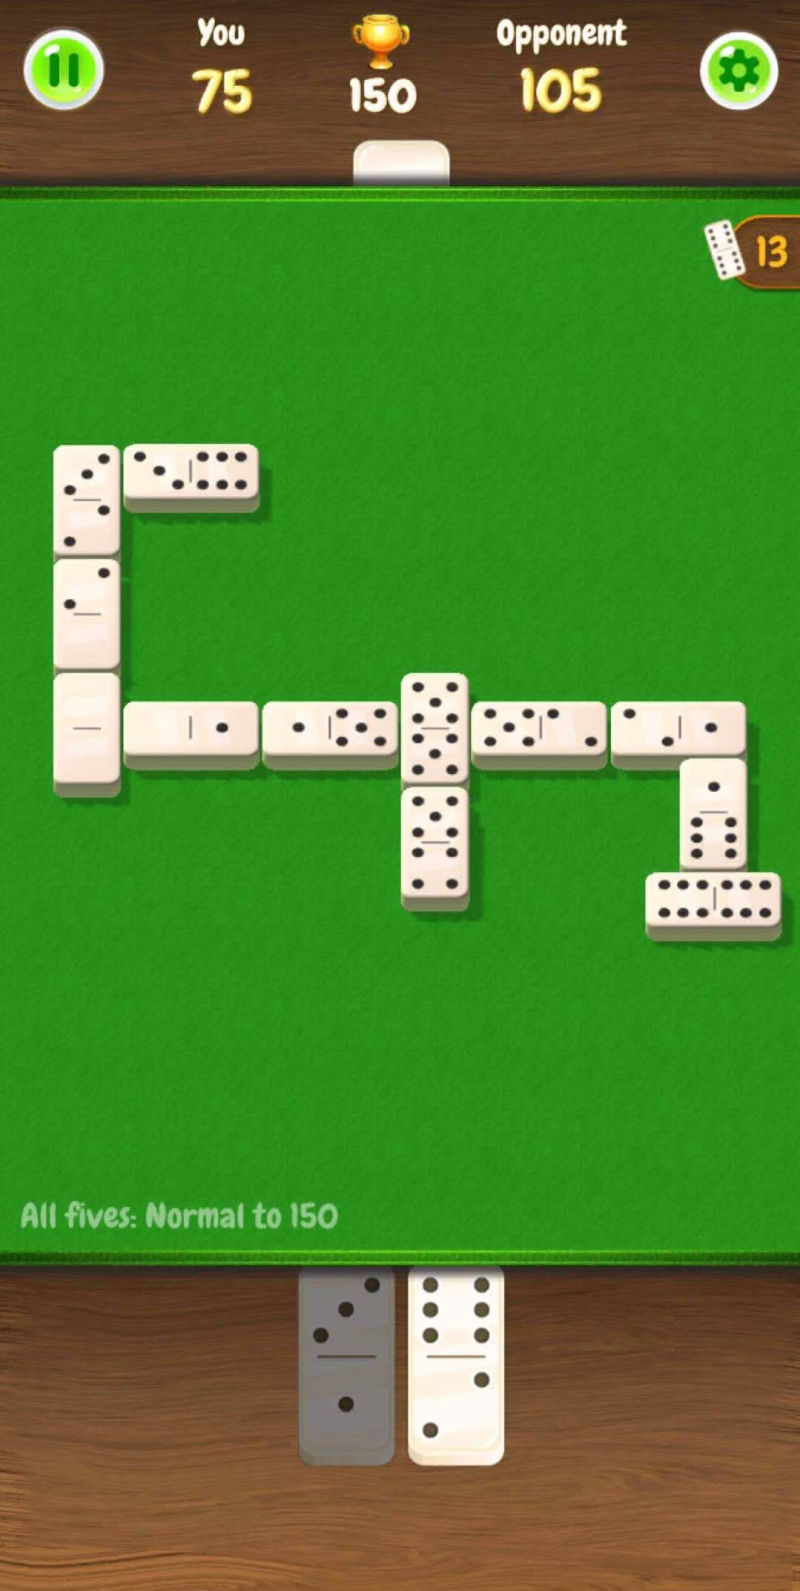 You can play mobile multiplayer Domino games online for free